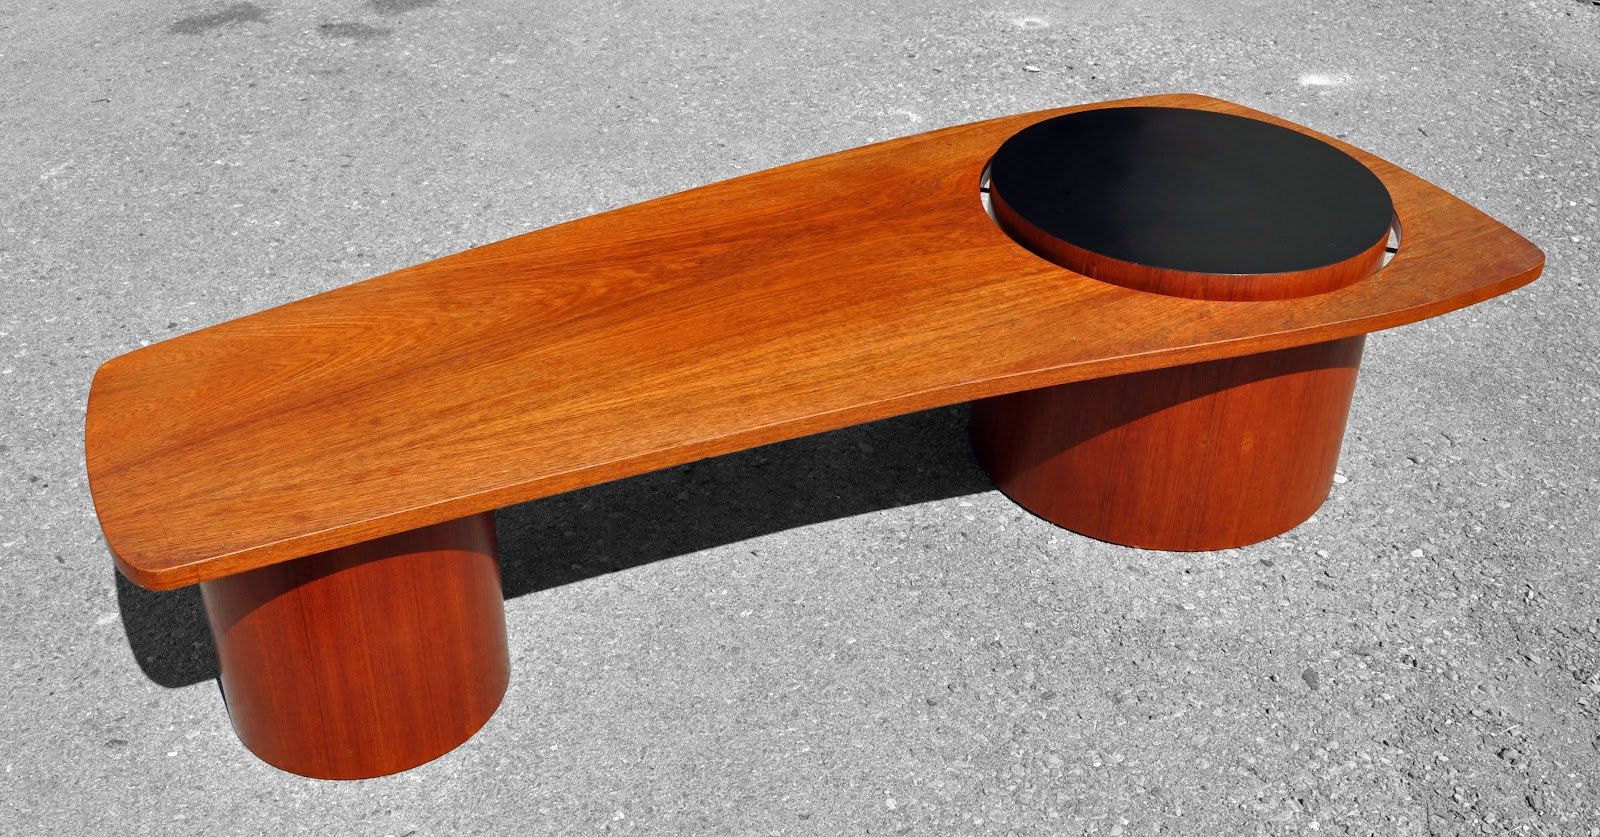 Antiques On Kent Sold Mid Century Teak Barrel Style Coffee Table